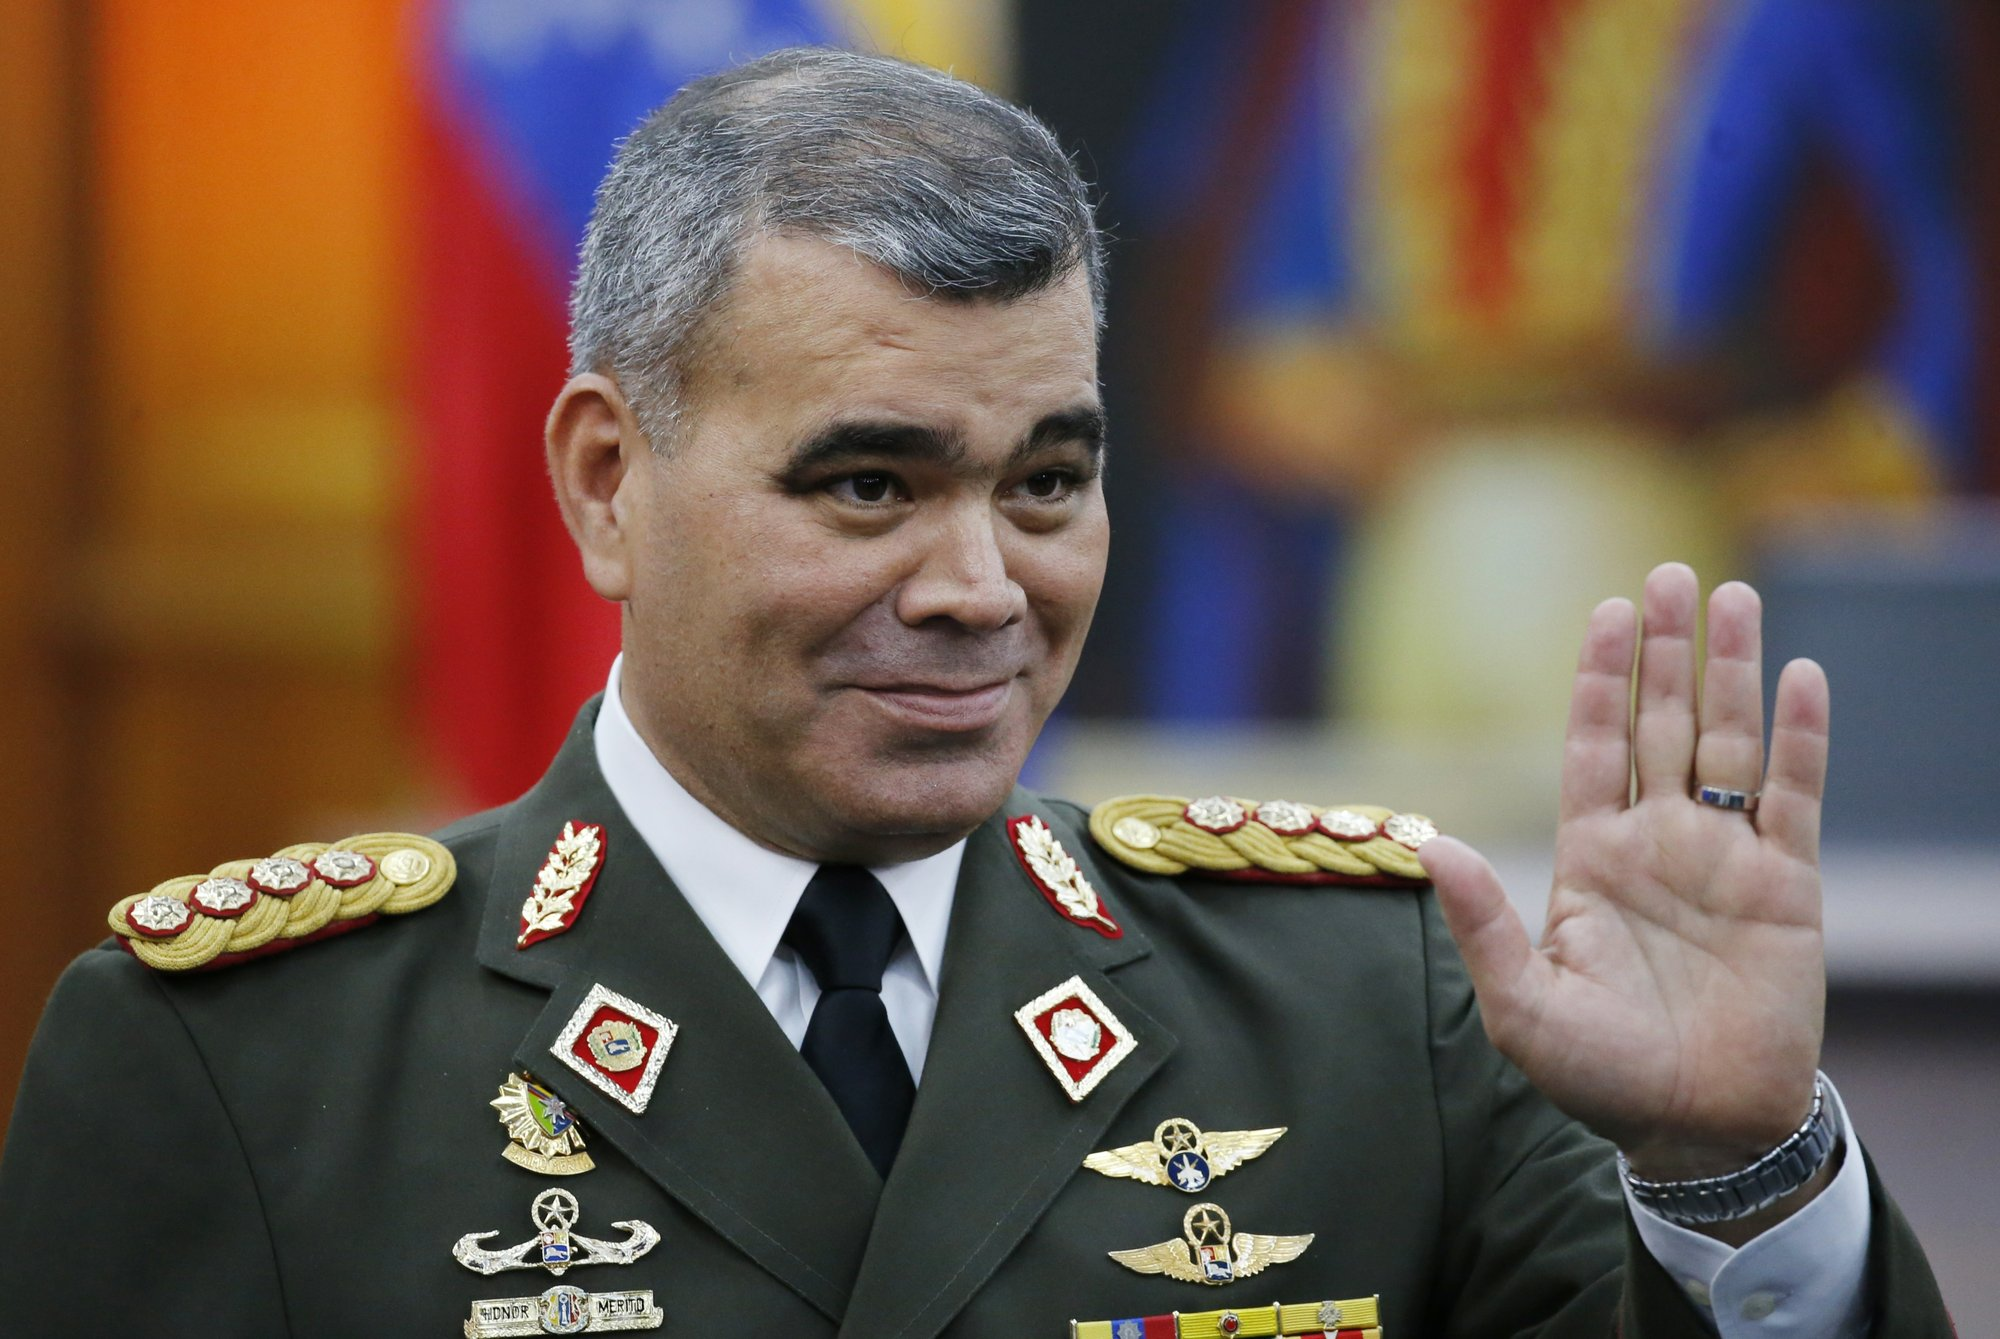 Why Venezuela military leaders are standing behind Maduro